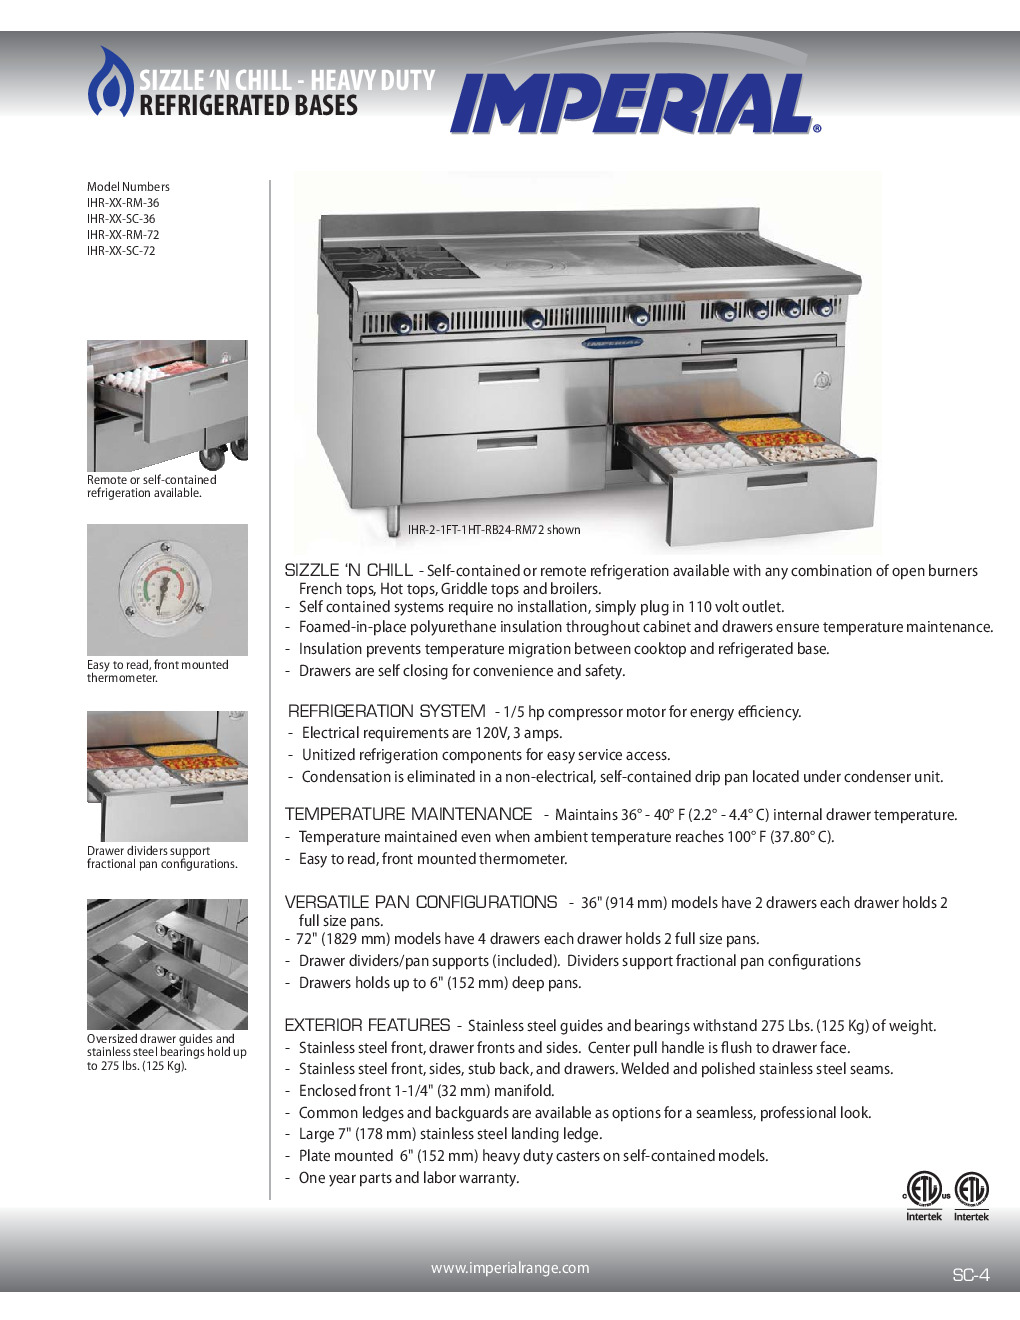 Imperial IHR-XX-RM-72 Refrigerated Base Equipment Stand